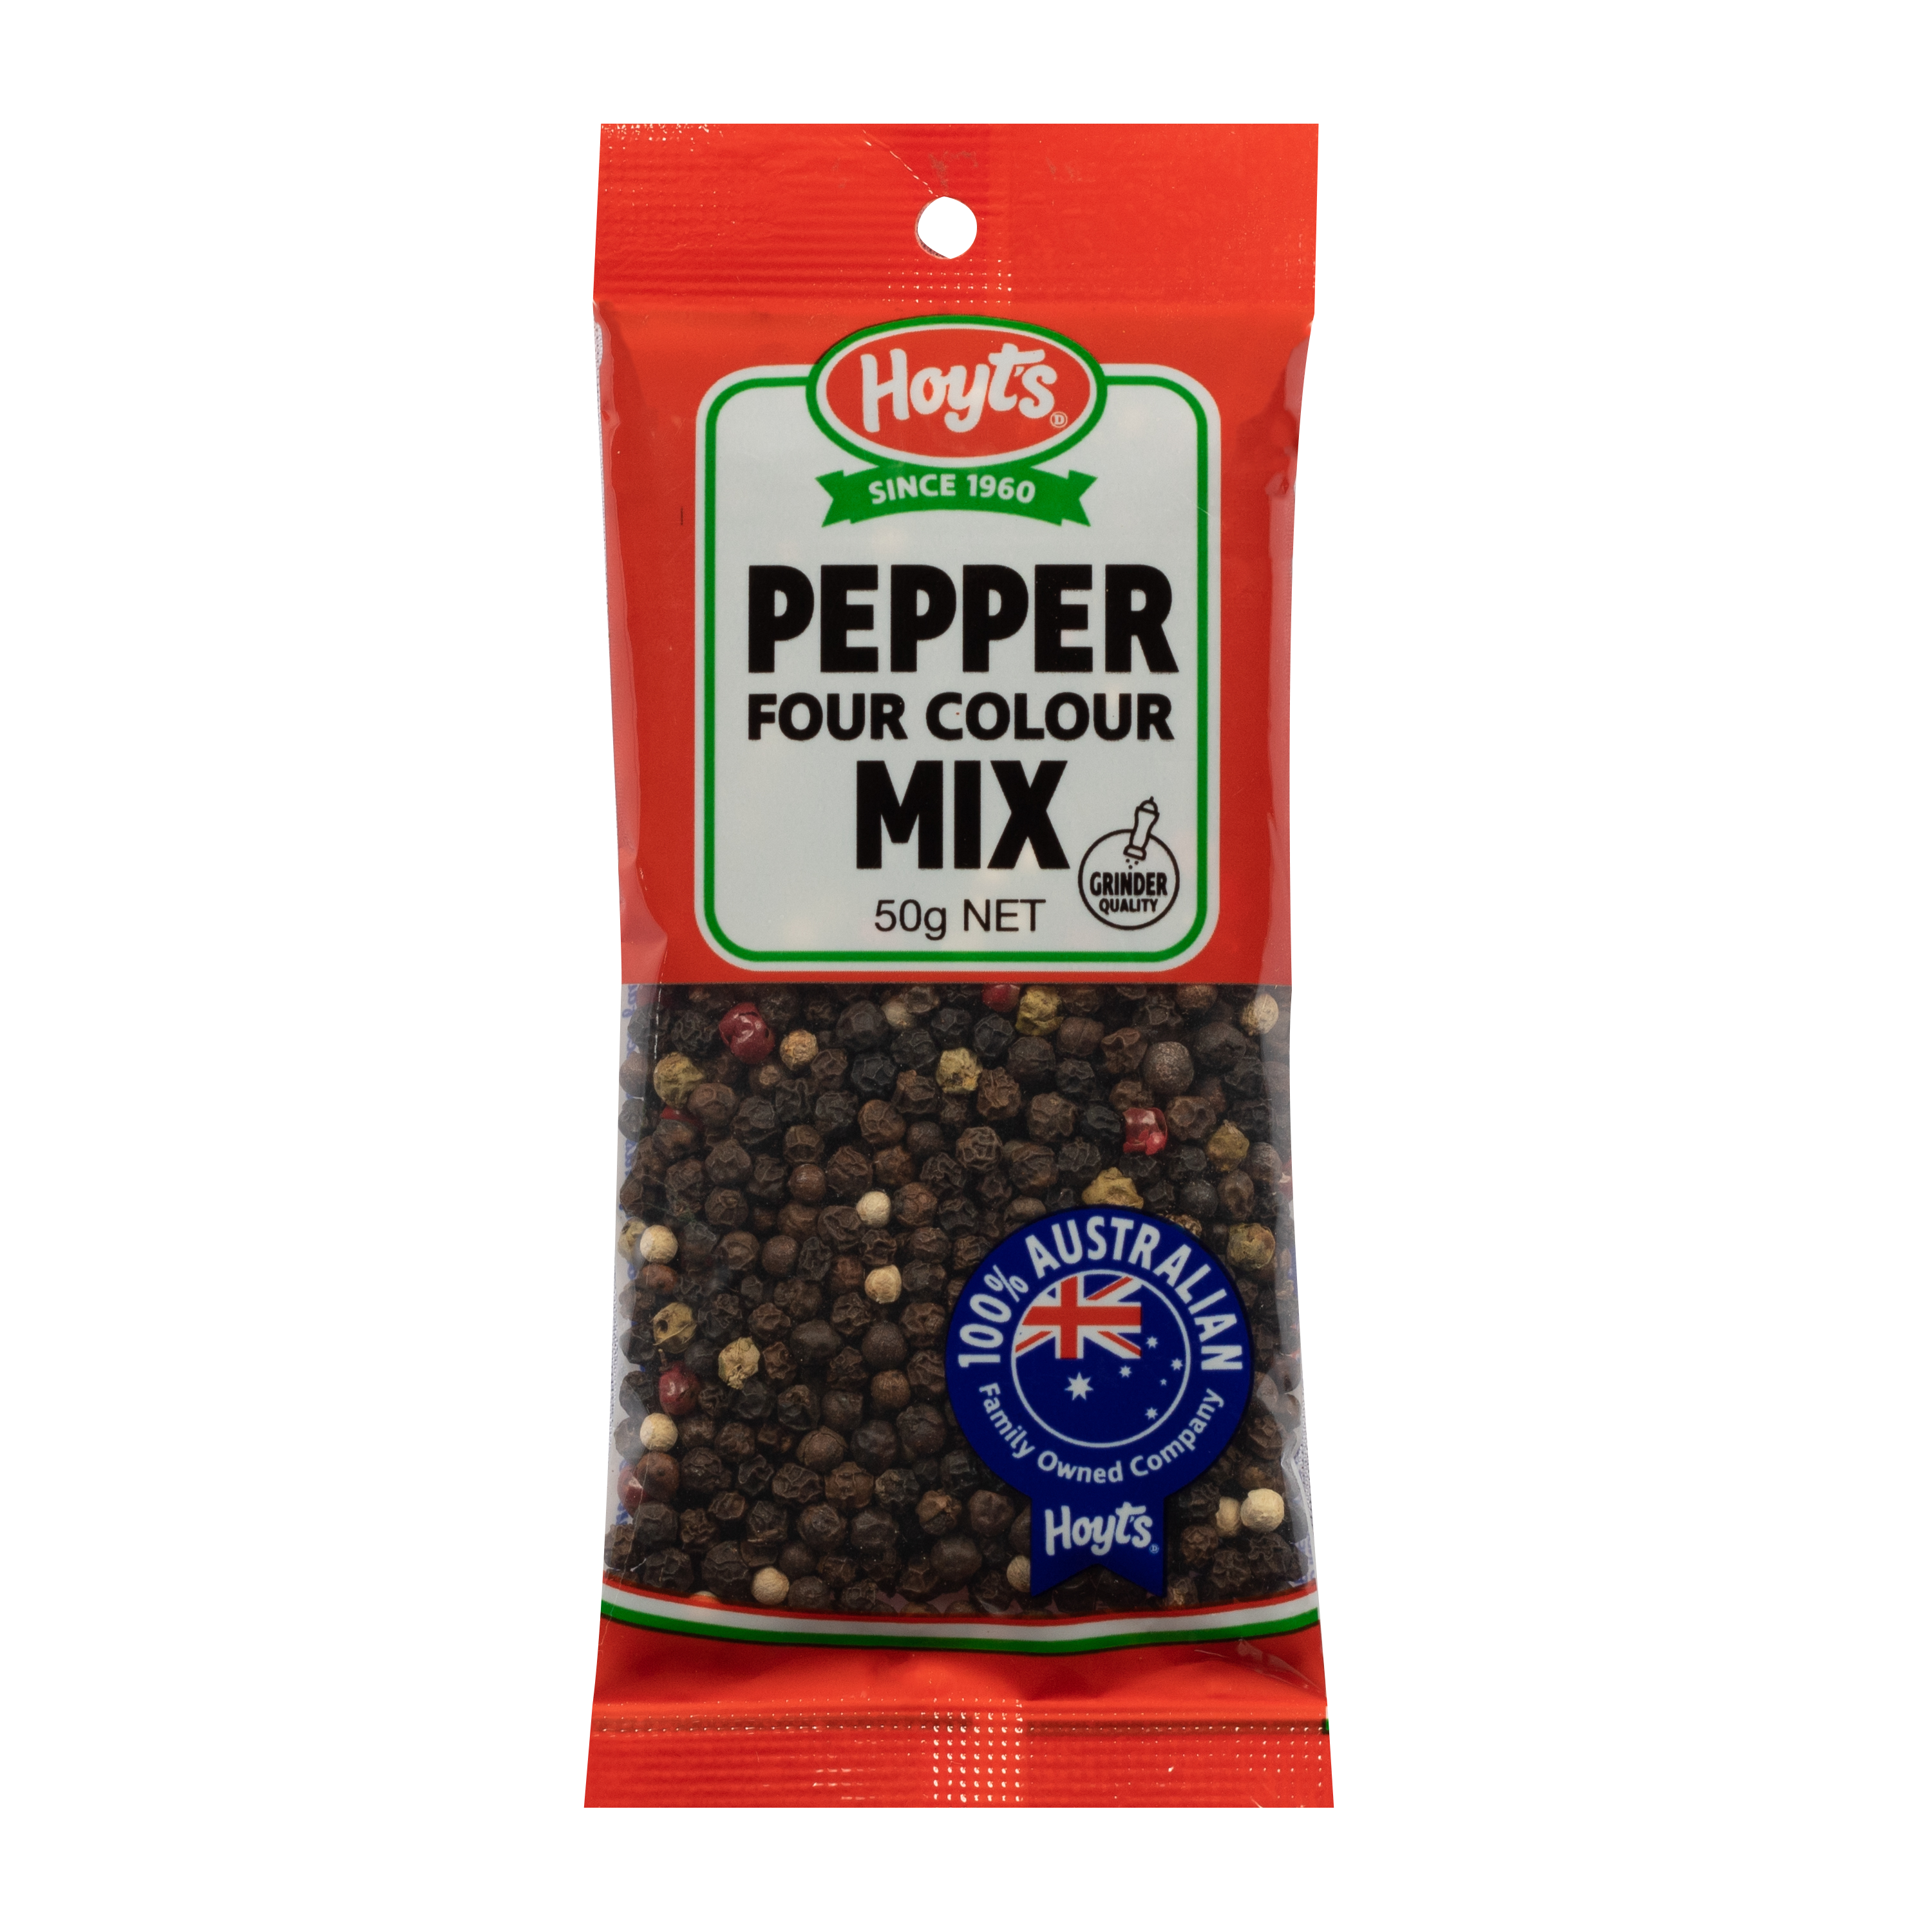 Hoyts Four Colour Pepper Mix 50g